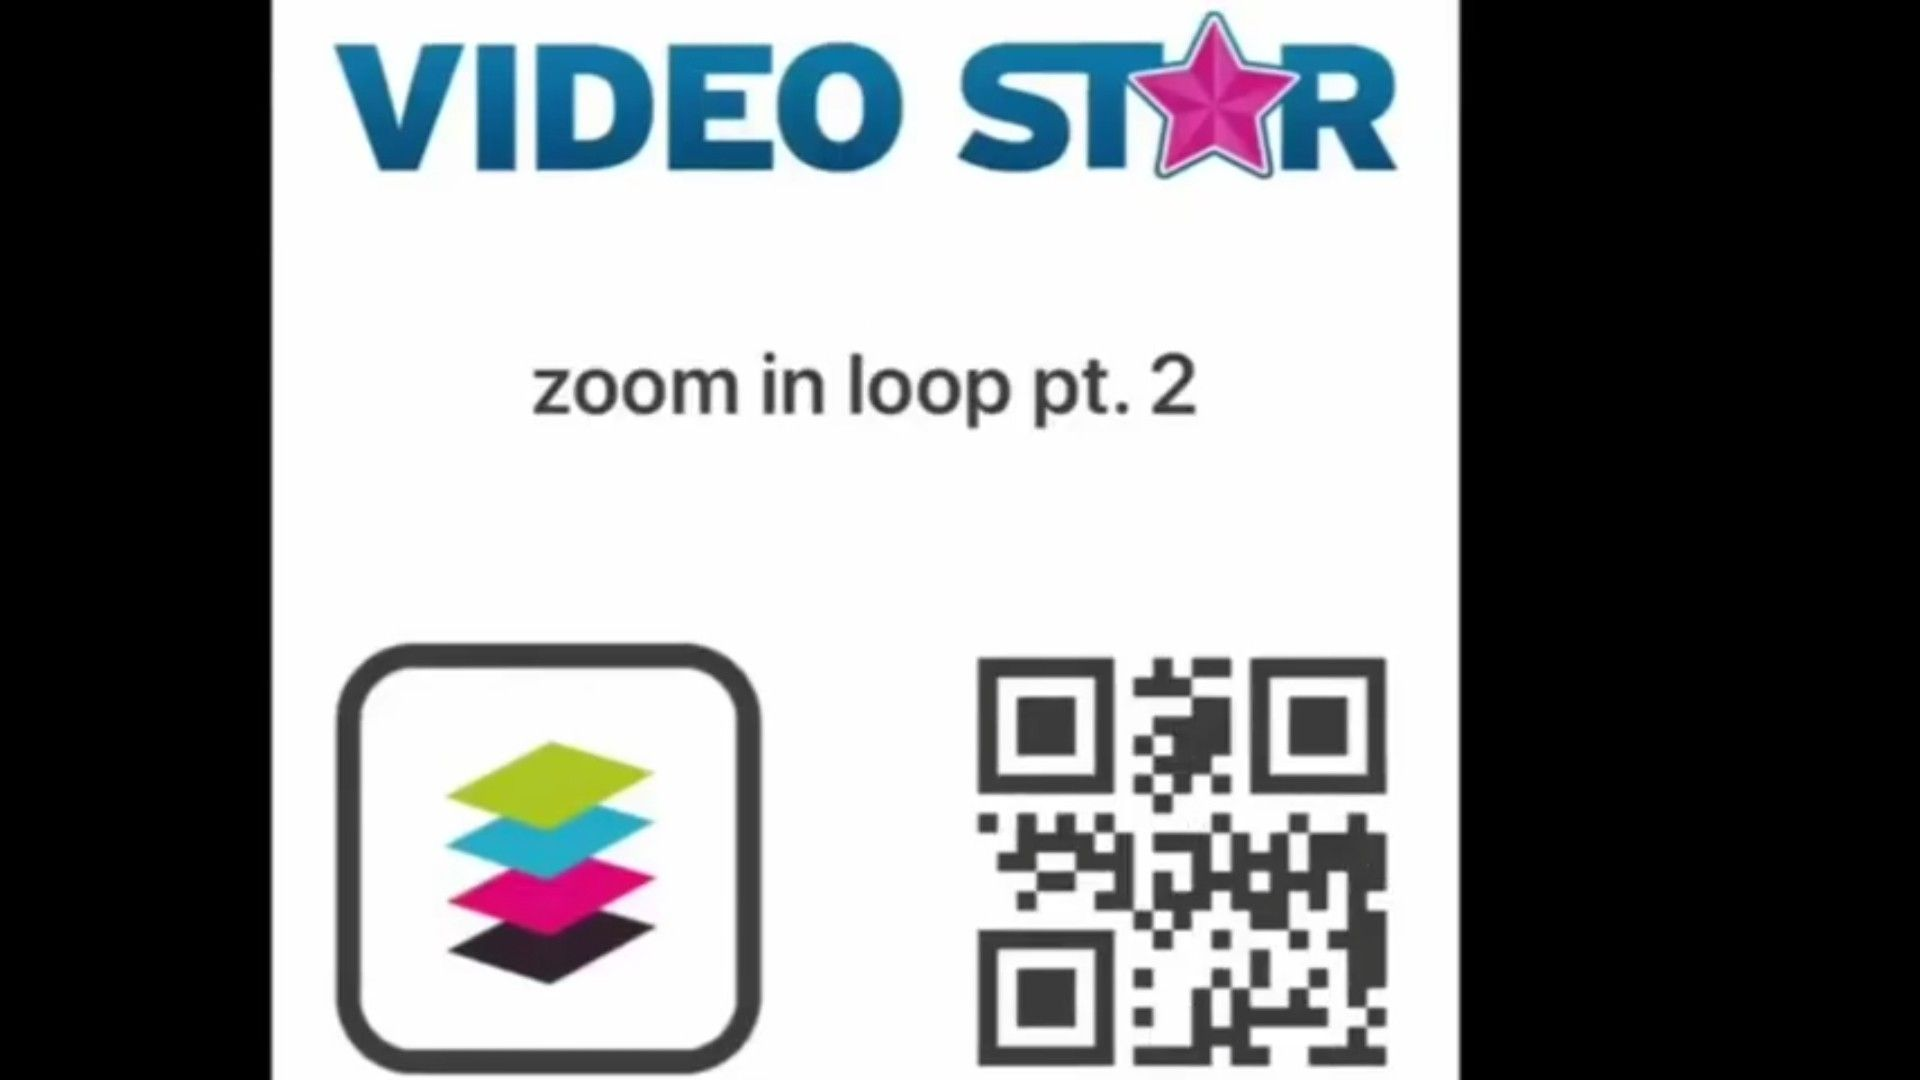 Free Qr Codes For Video Star Pack